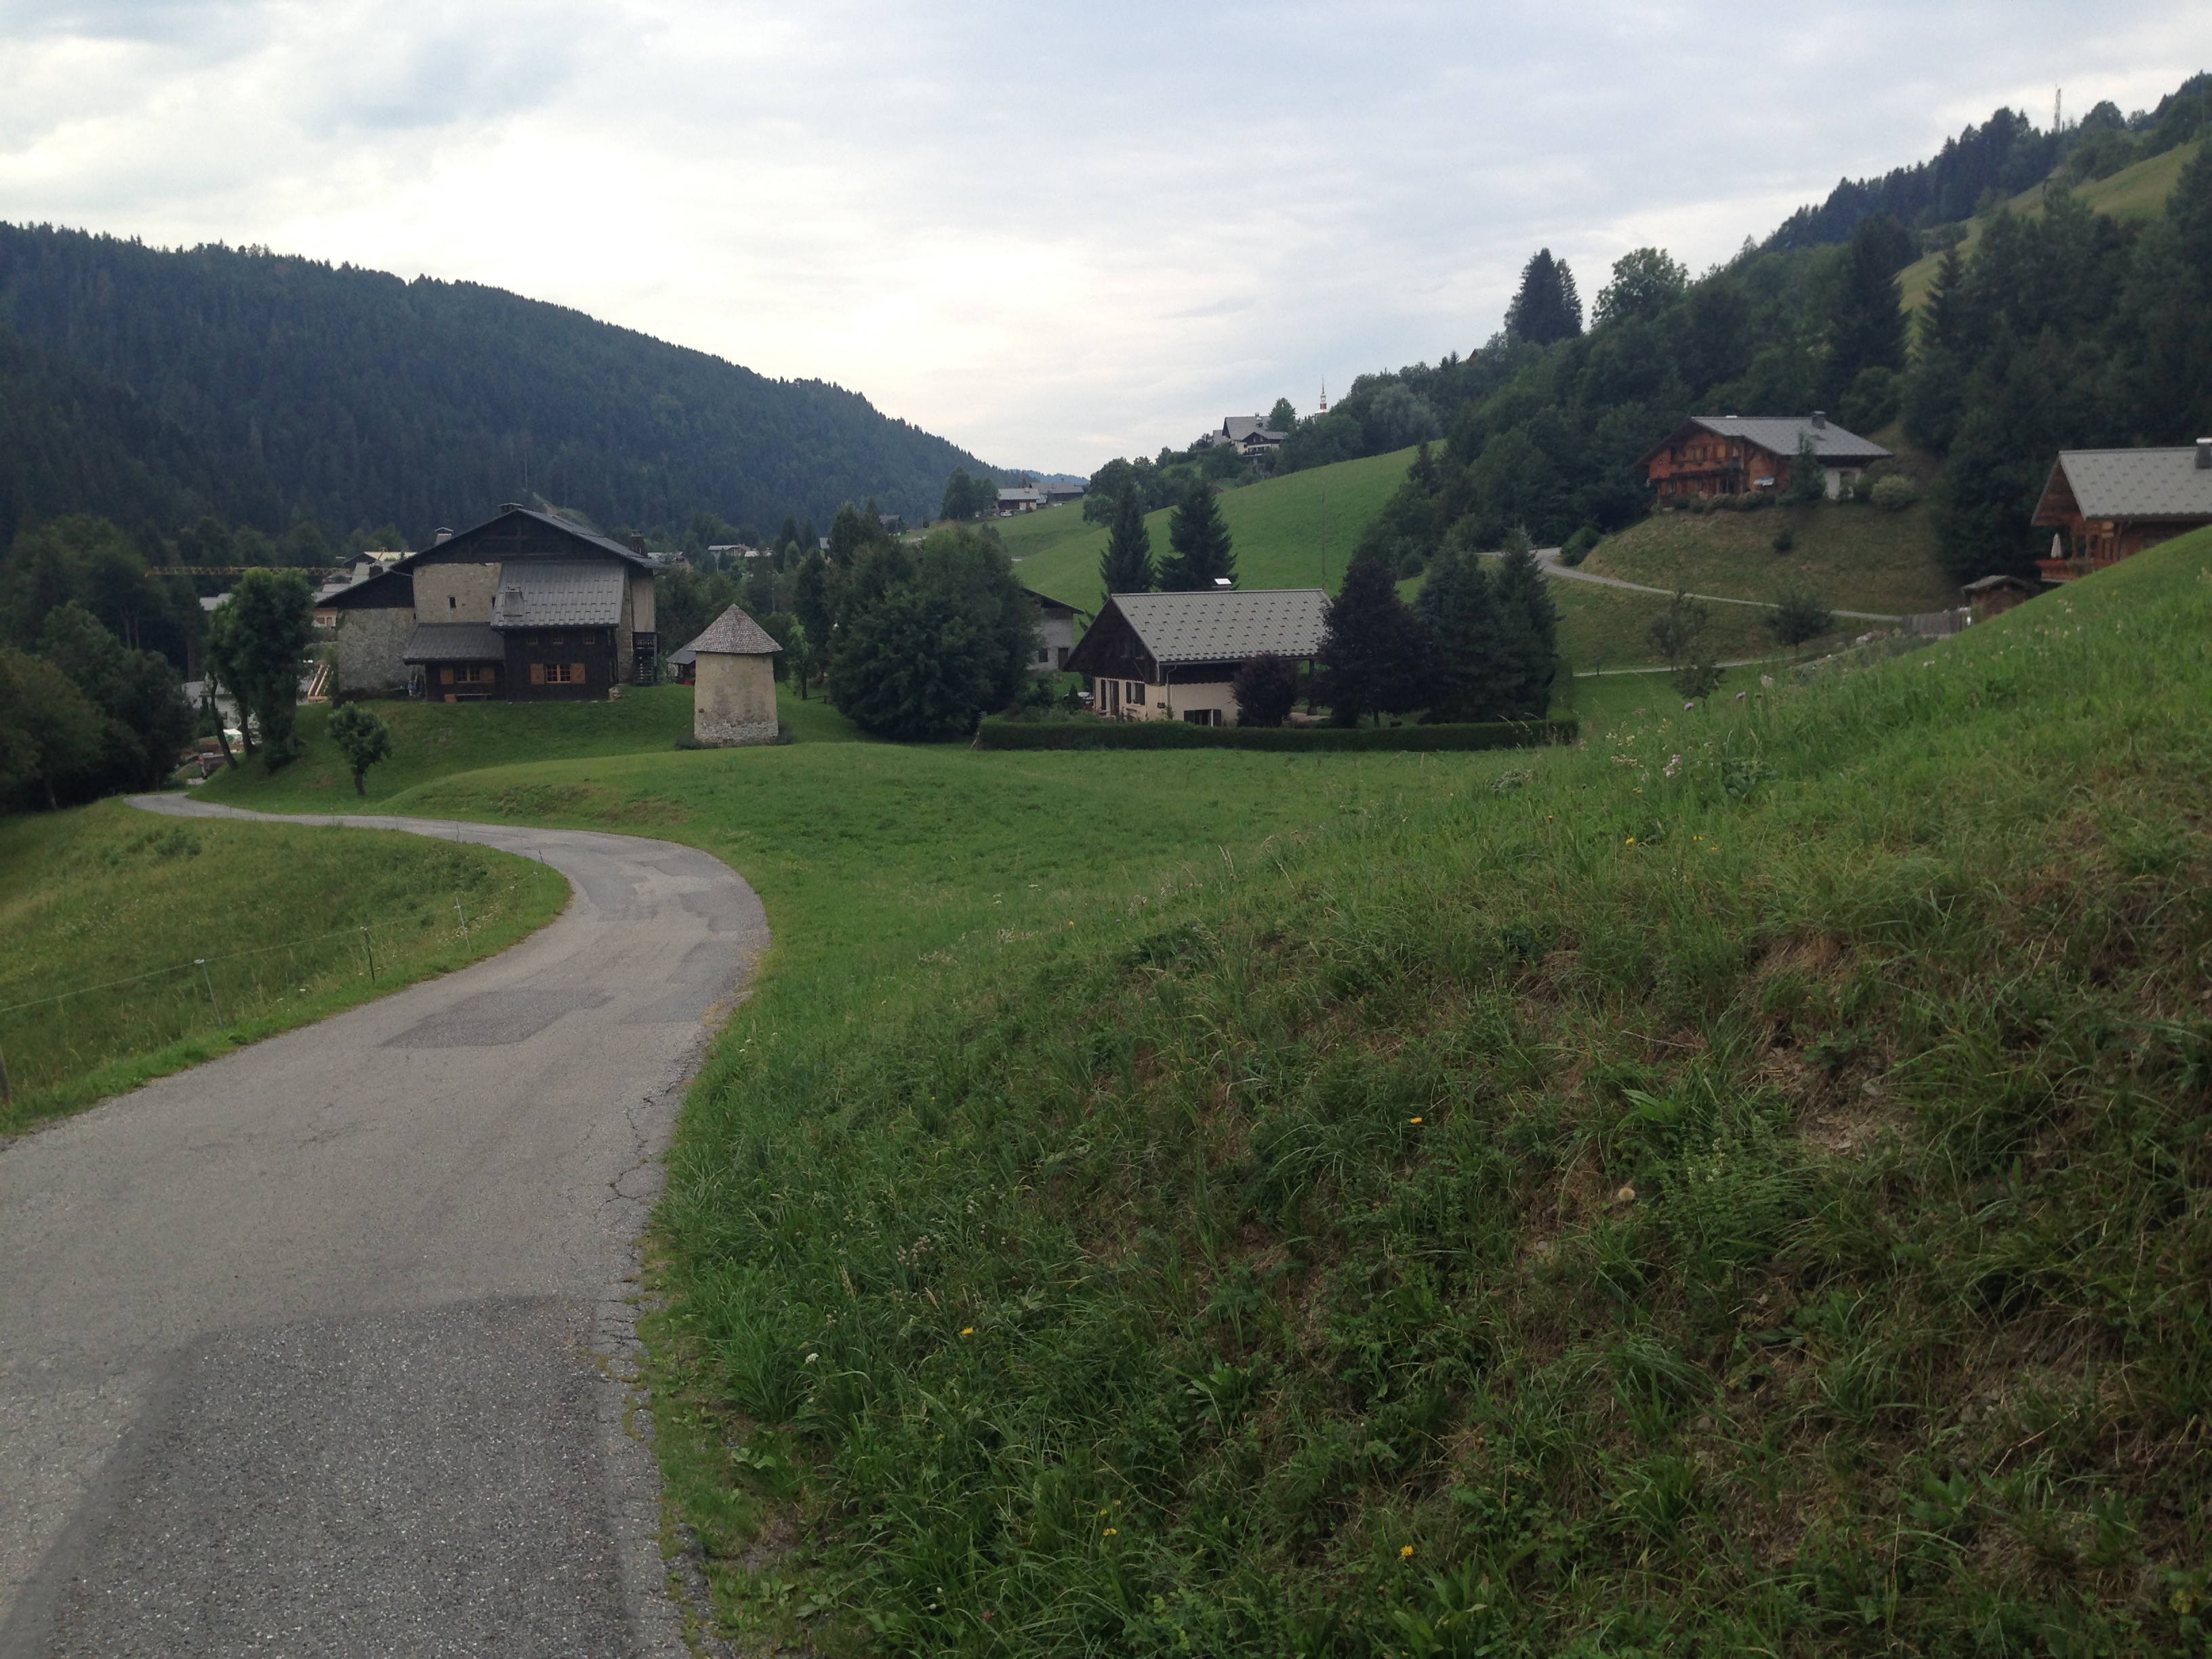 View of Chalet from road to St Nicolas